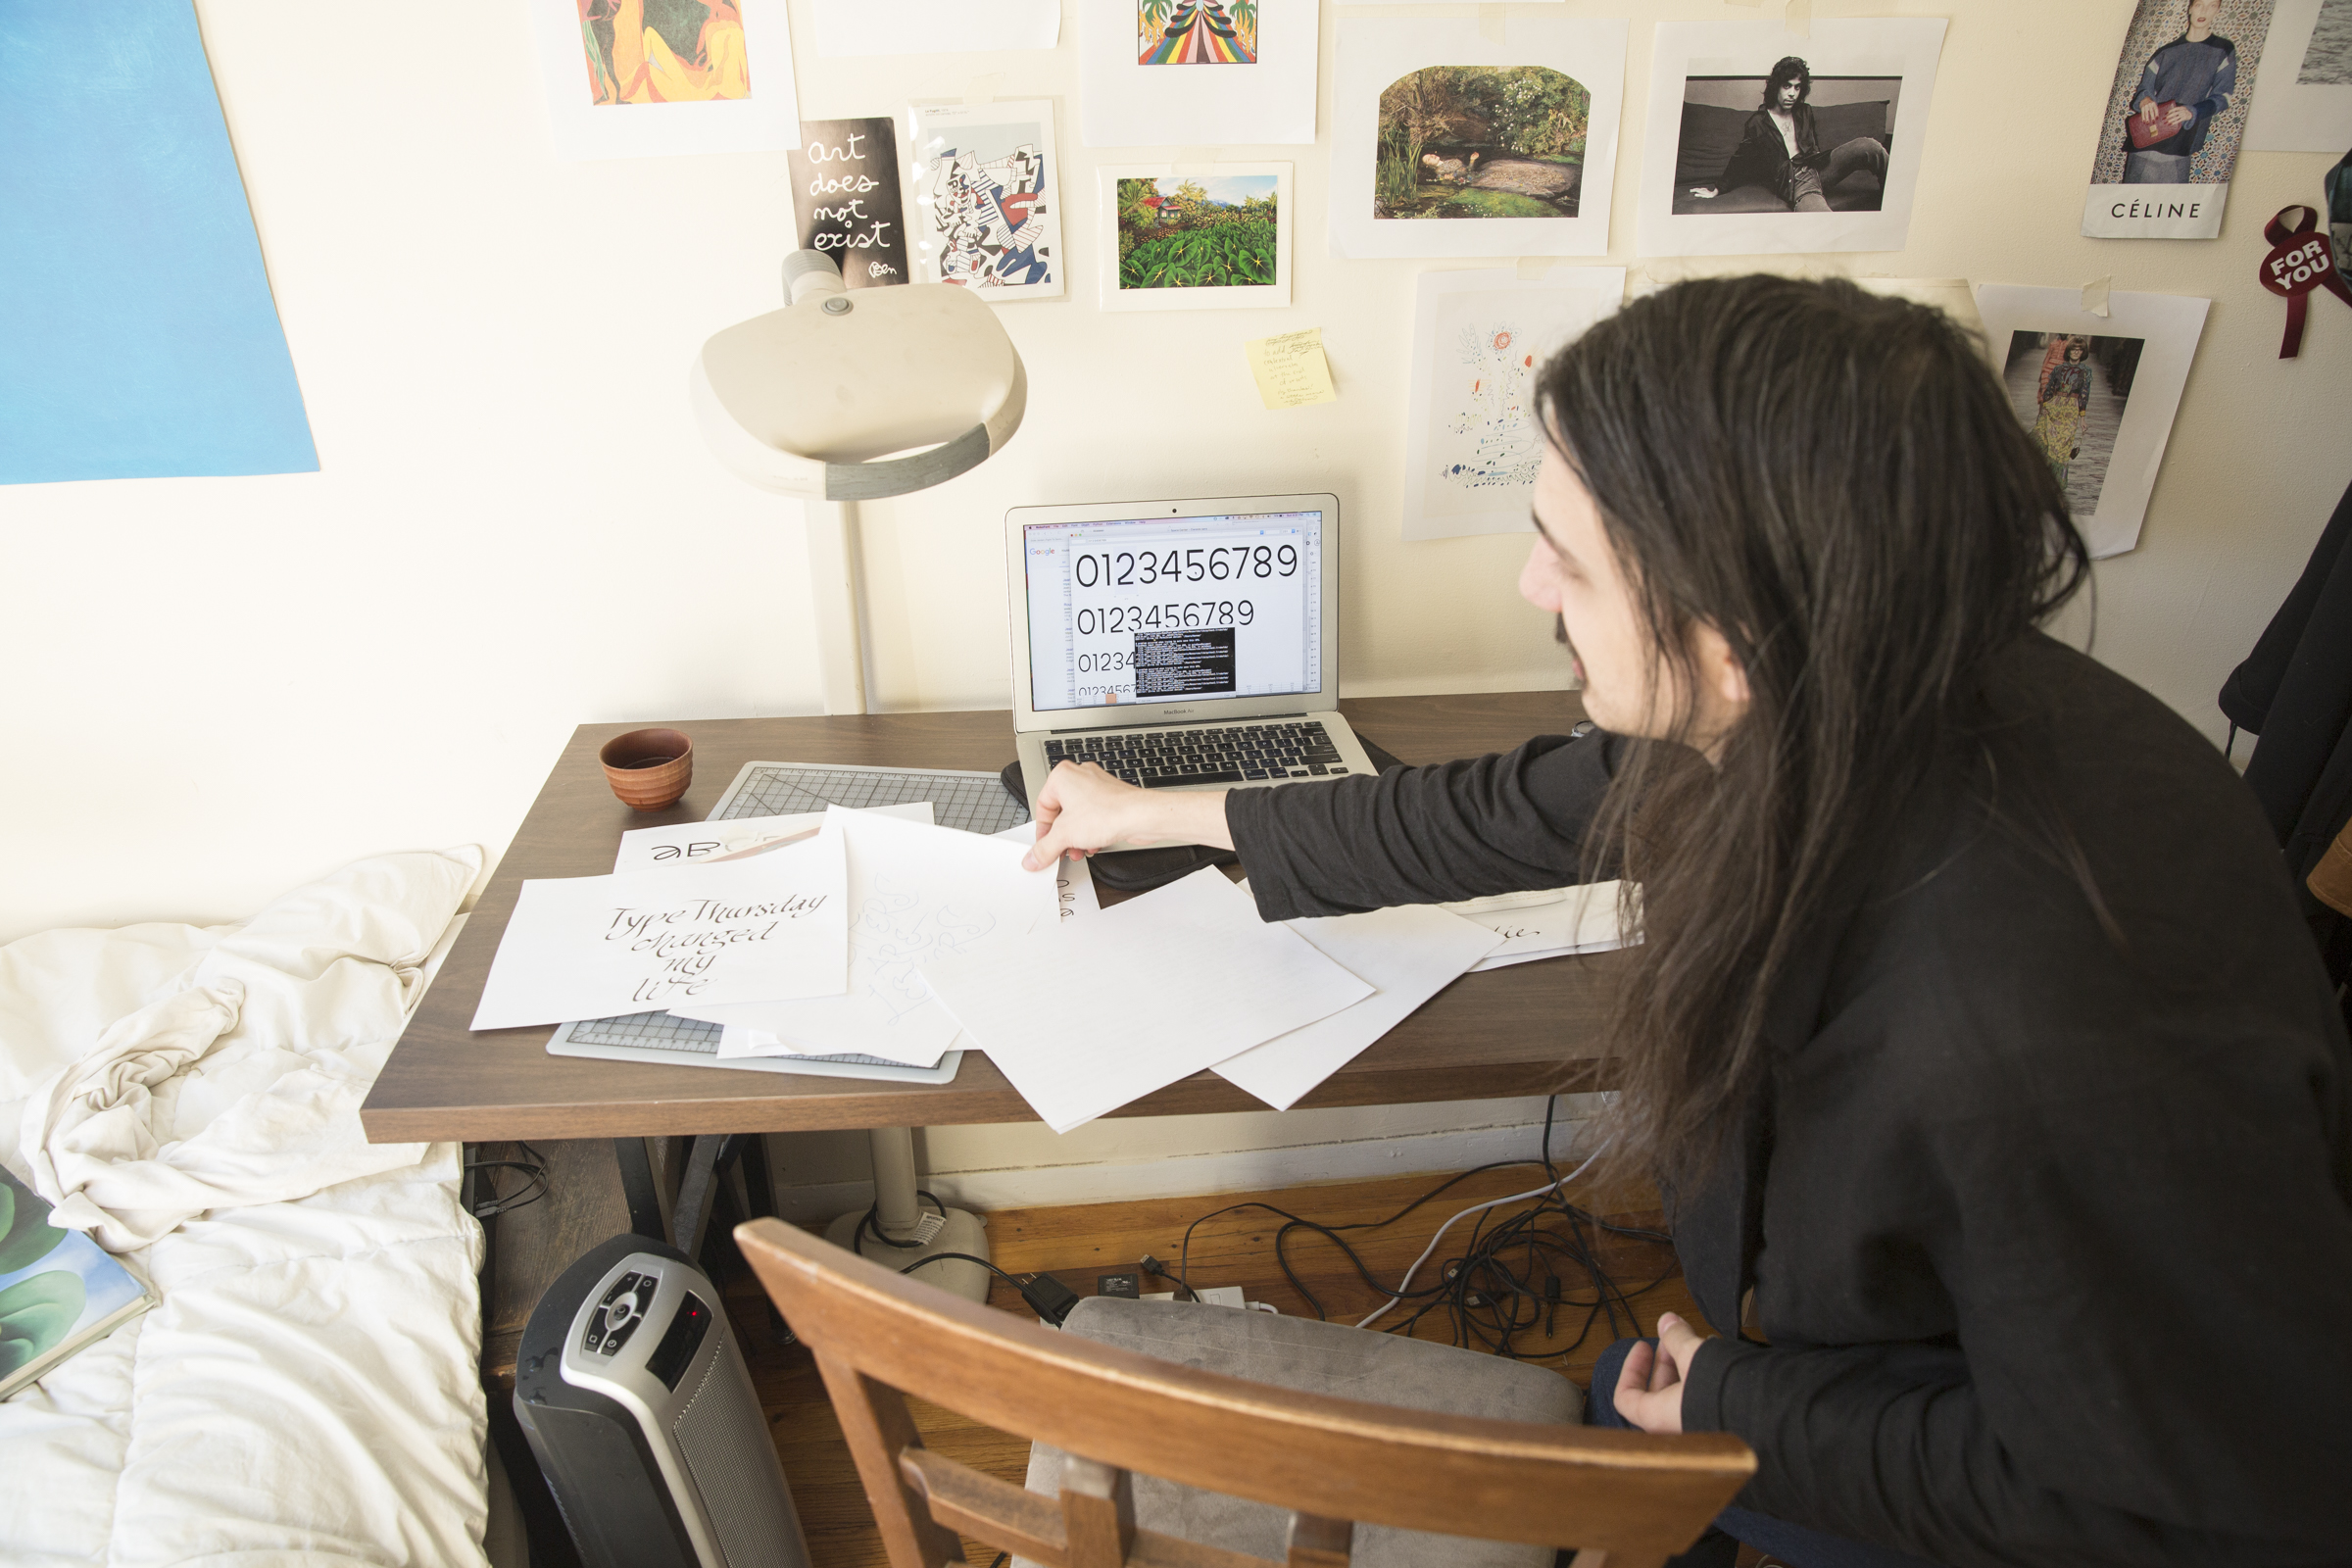 Aaron goes through calligraphy exercises and type sketches. A typeface they're working on is visible on the computer screen. They studied under type master Tony DiSpigna, who was a big influence on their calligraphic style.